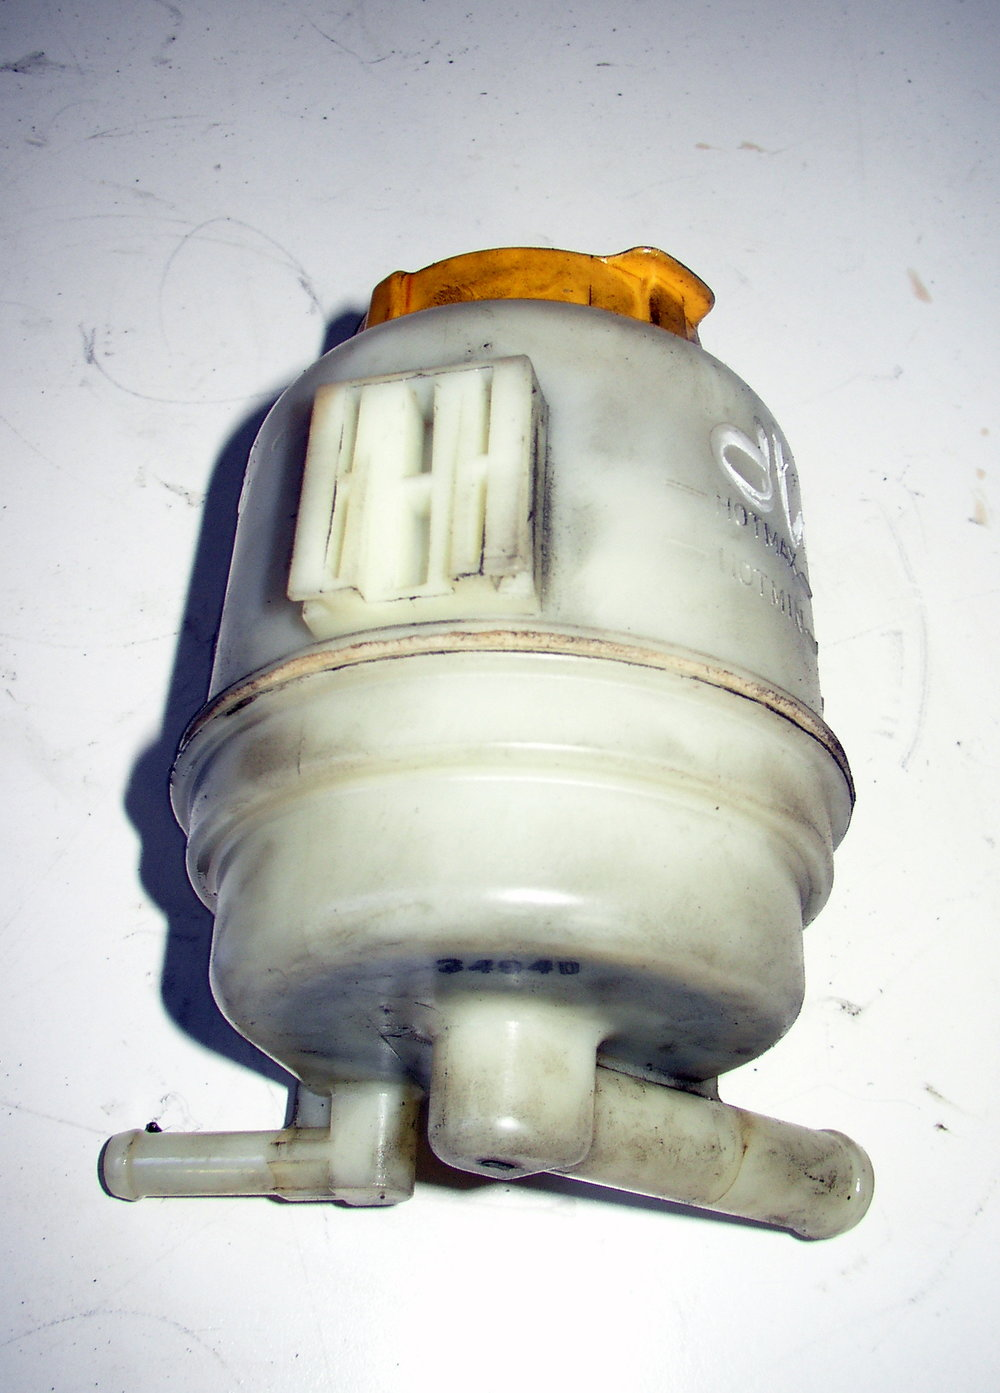 Power Steering Fluid Reservior (2002-2007 Impreza)